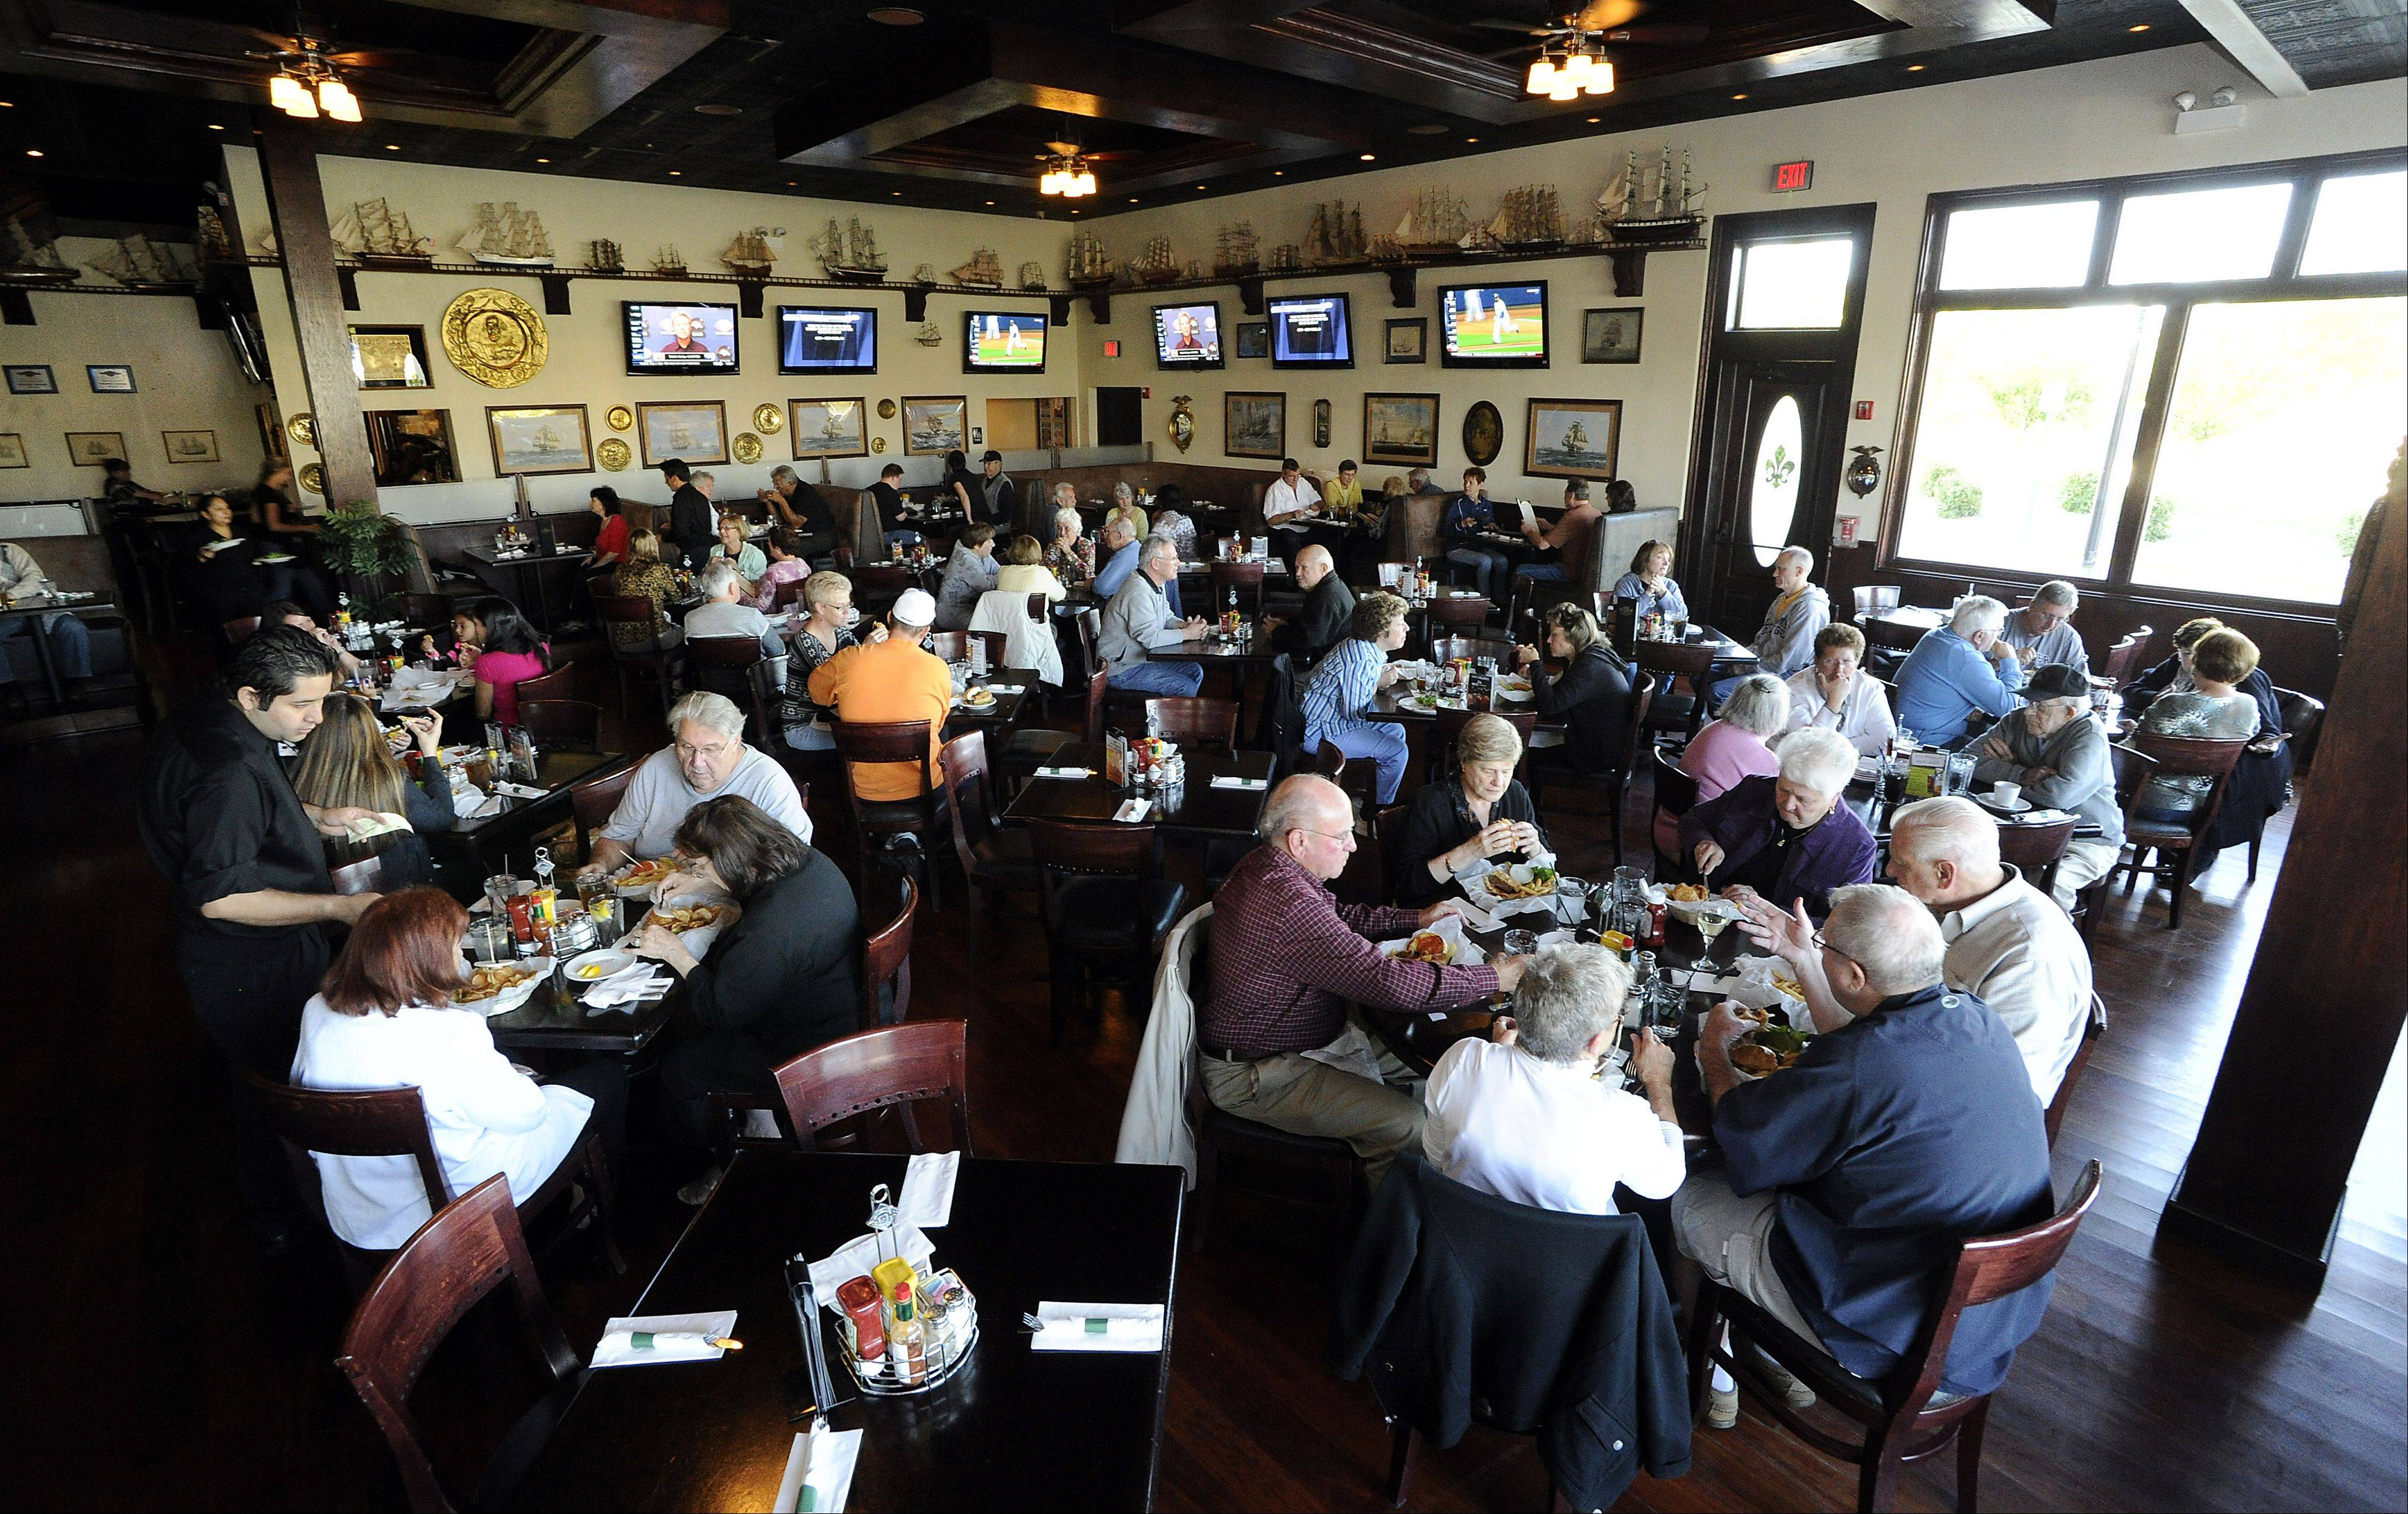 Schaumburg's John Barleycorn restaurant is ceasing its day-to-day operations, but will remain open exclusively as a venue for private parties and special events, its owner announced Tuesday. The restaurant opened at 1100 American Lane in 2008.